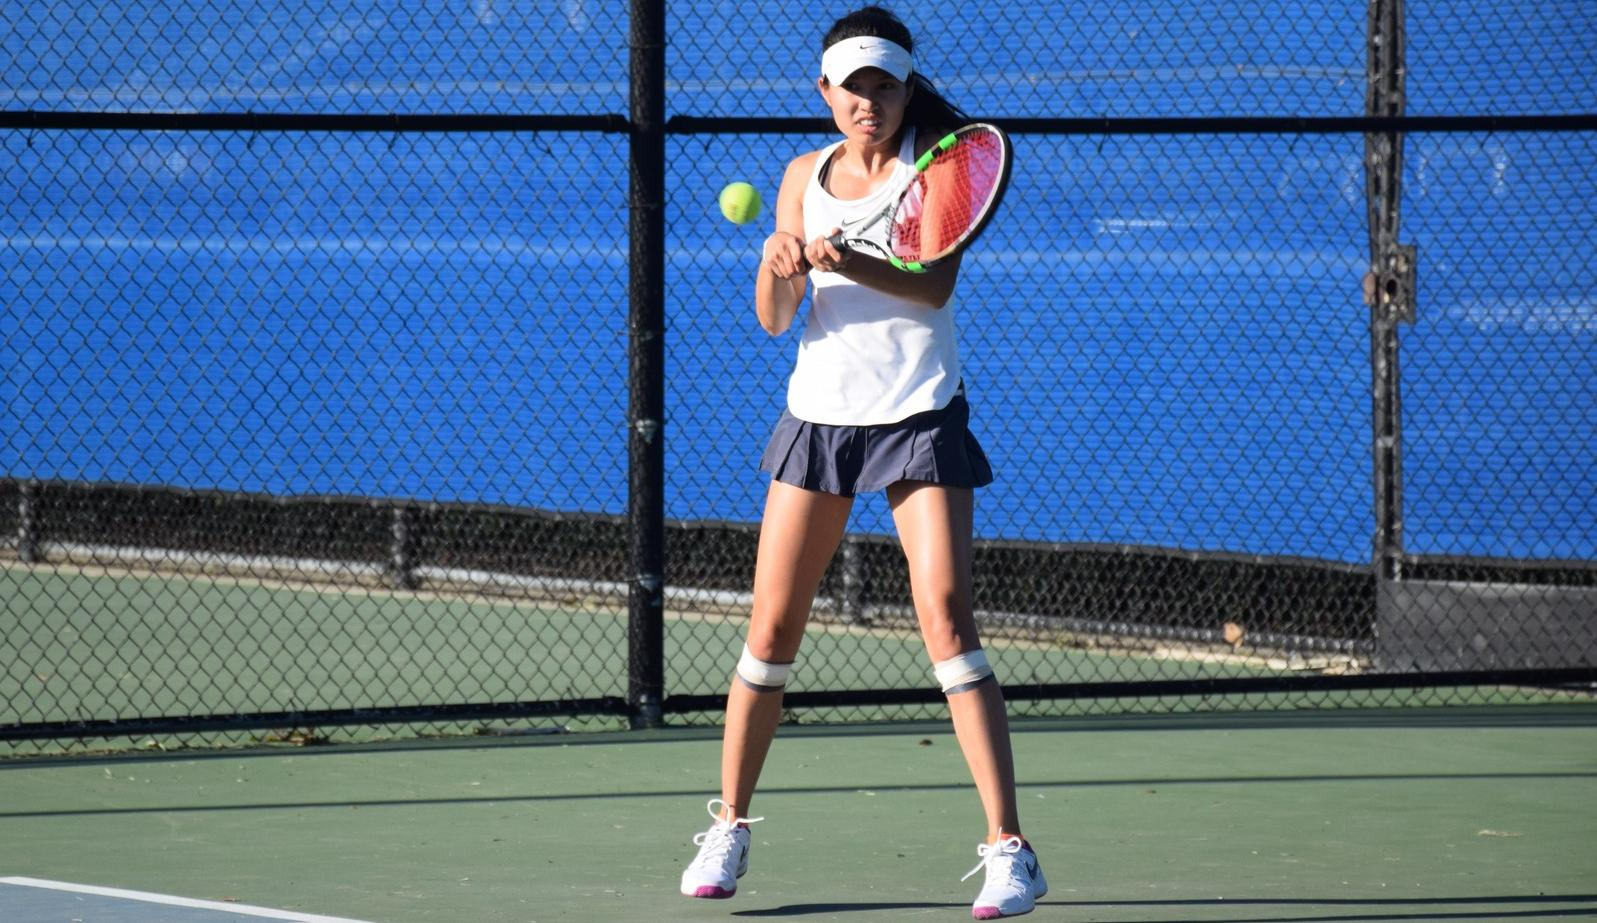 Women's tennis team preps for conference with 9-0 victory